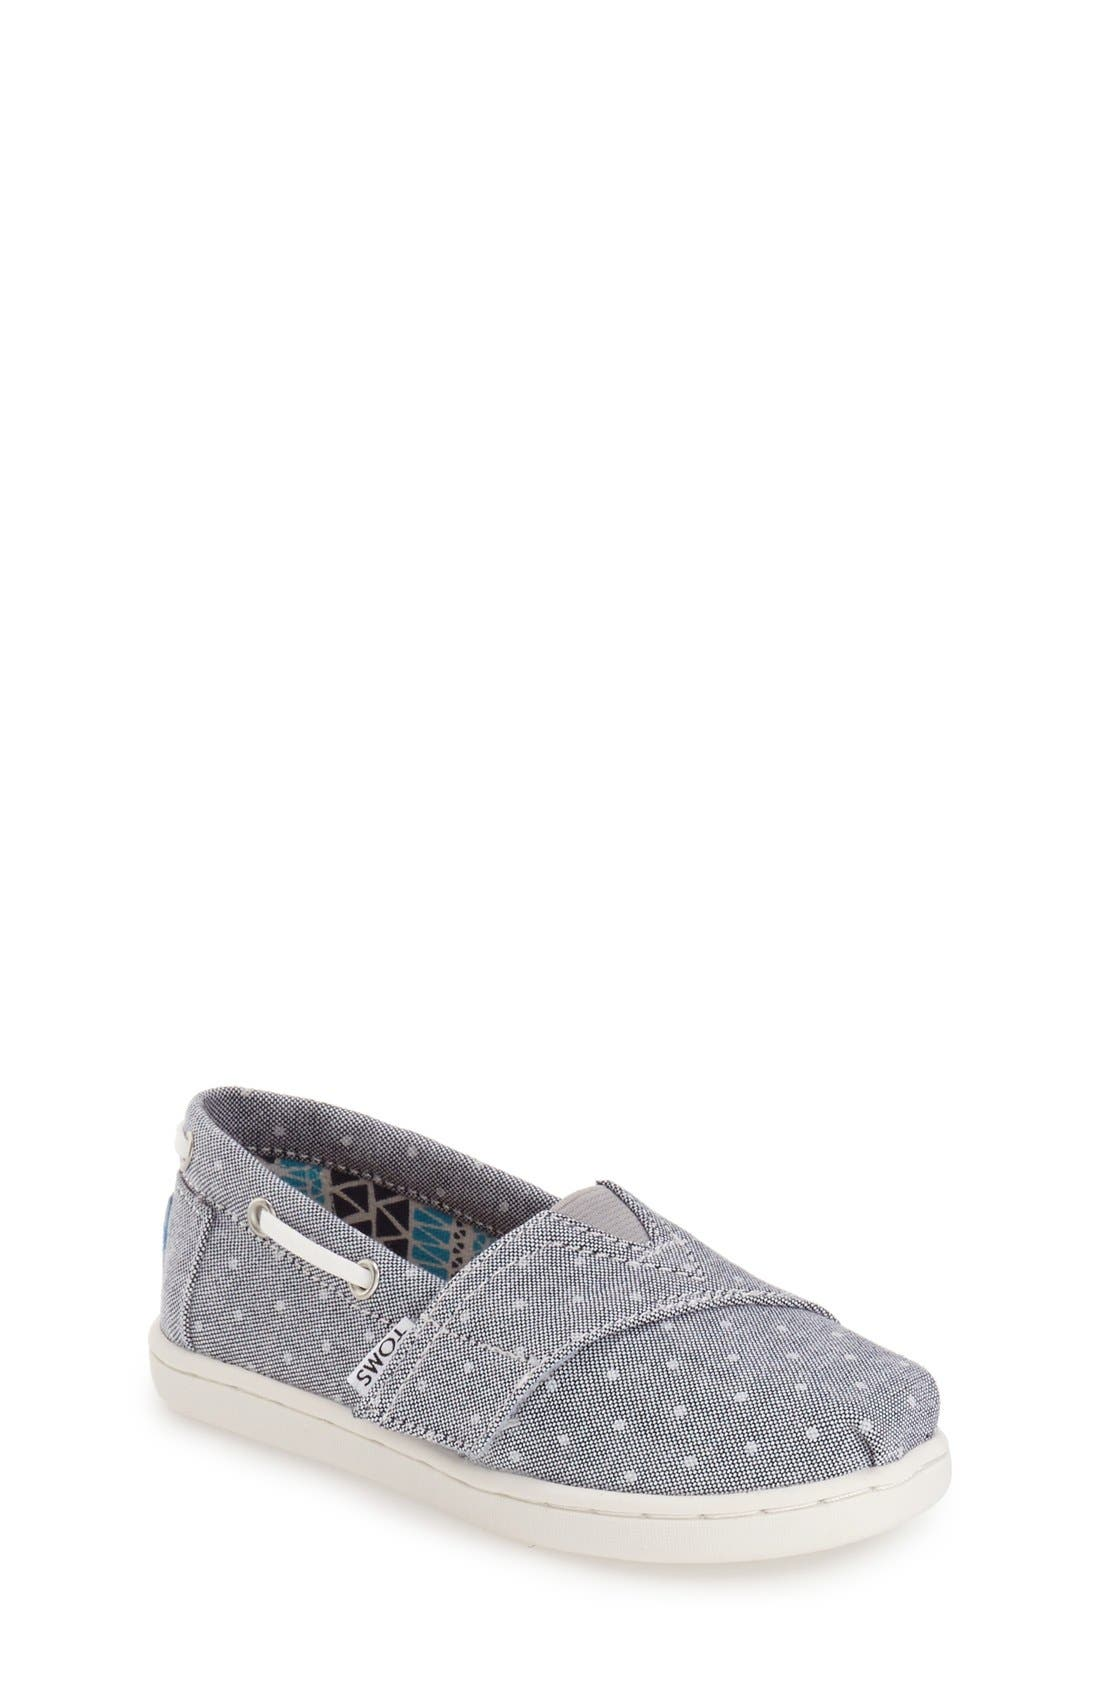 'Bimini - Tiny' Slip-On,                             Main thumbnail 1, color,                             Grey